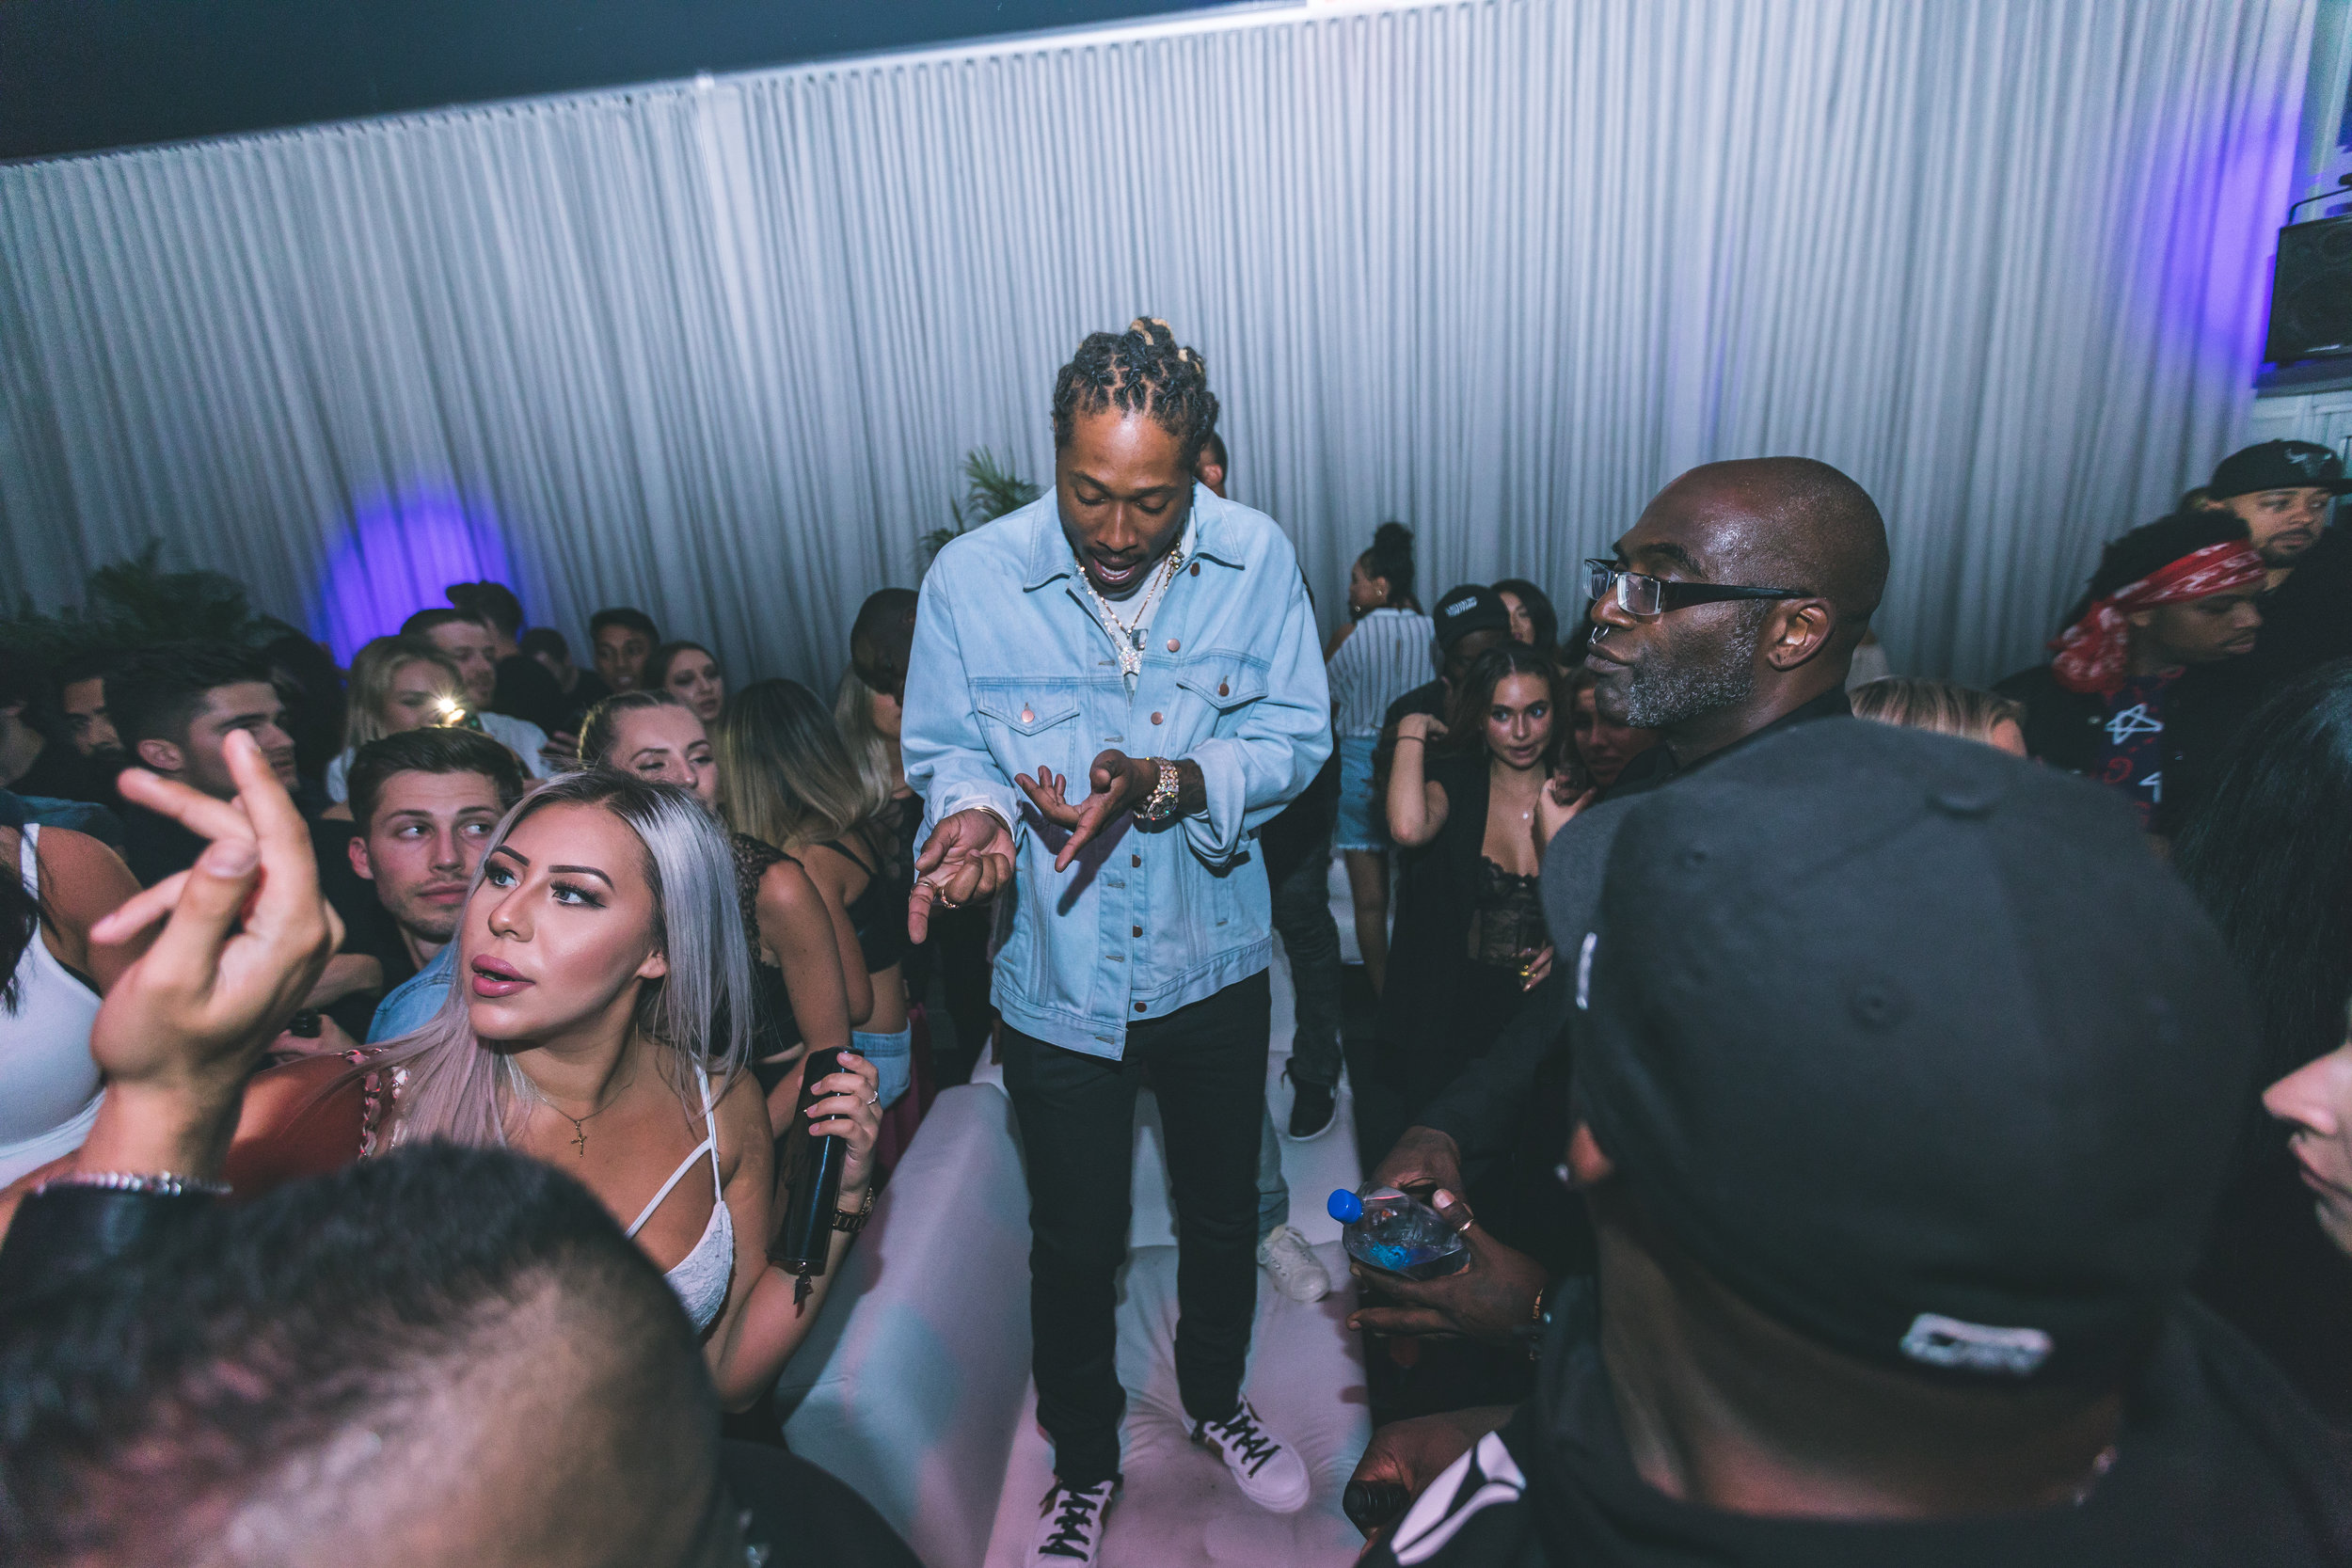 6.10.2017 - Future @ Drai's - Edited (47 of 57).jpg